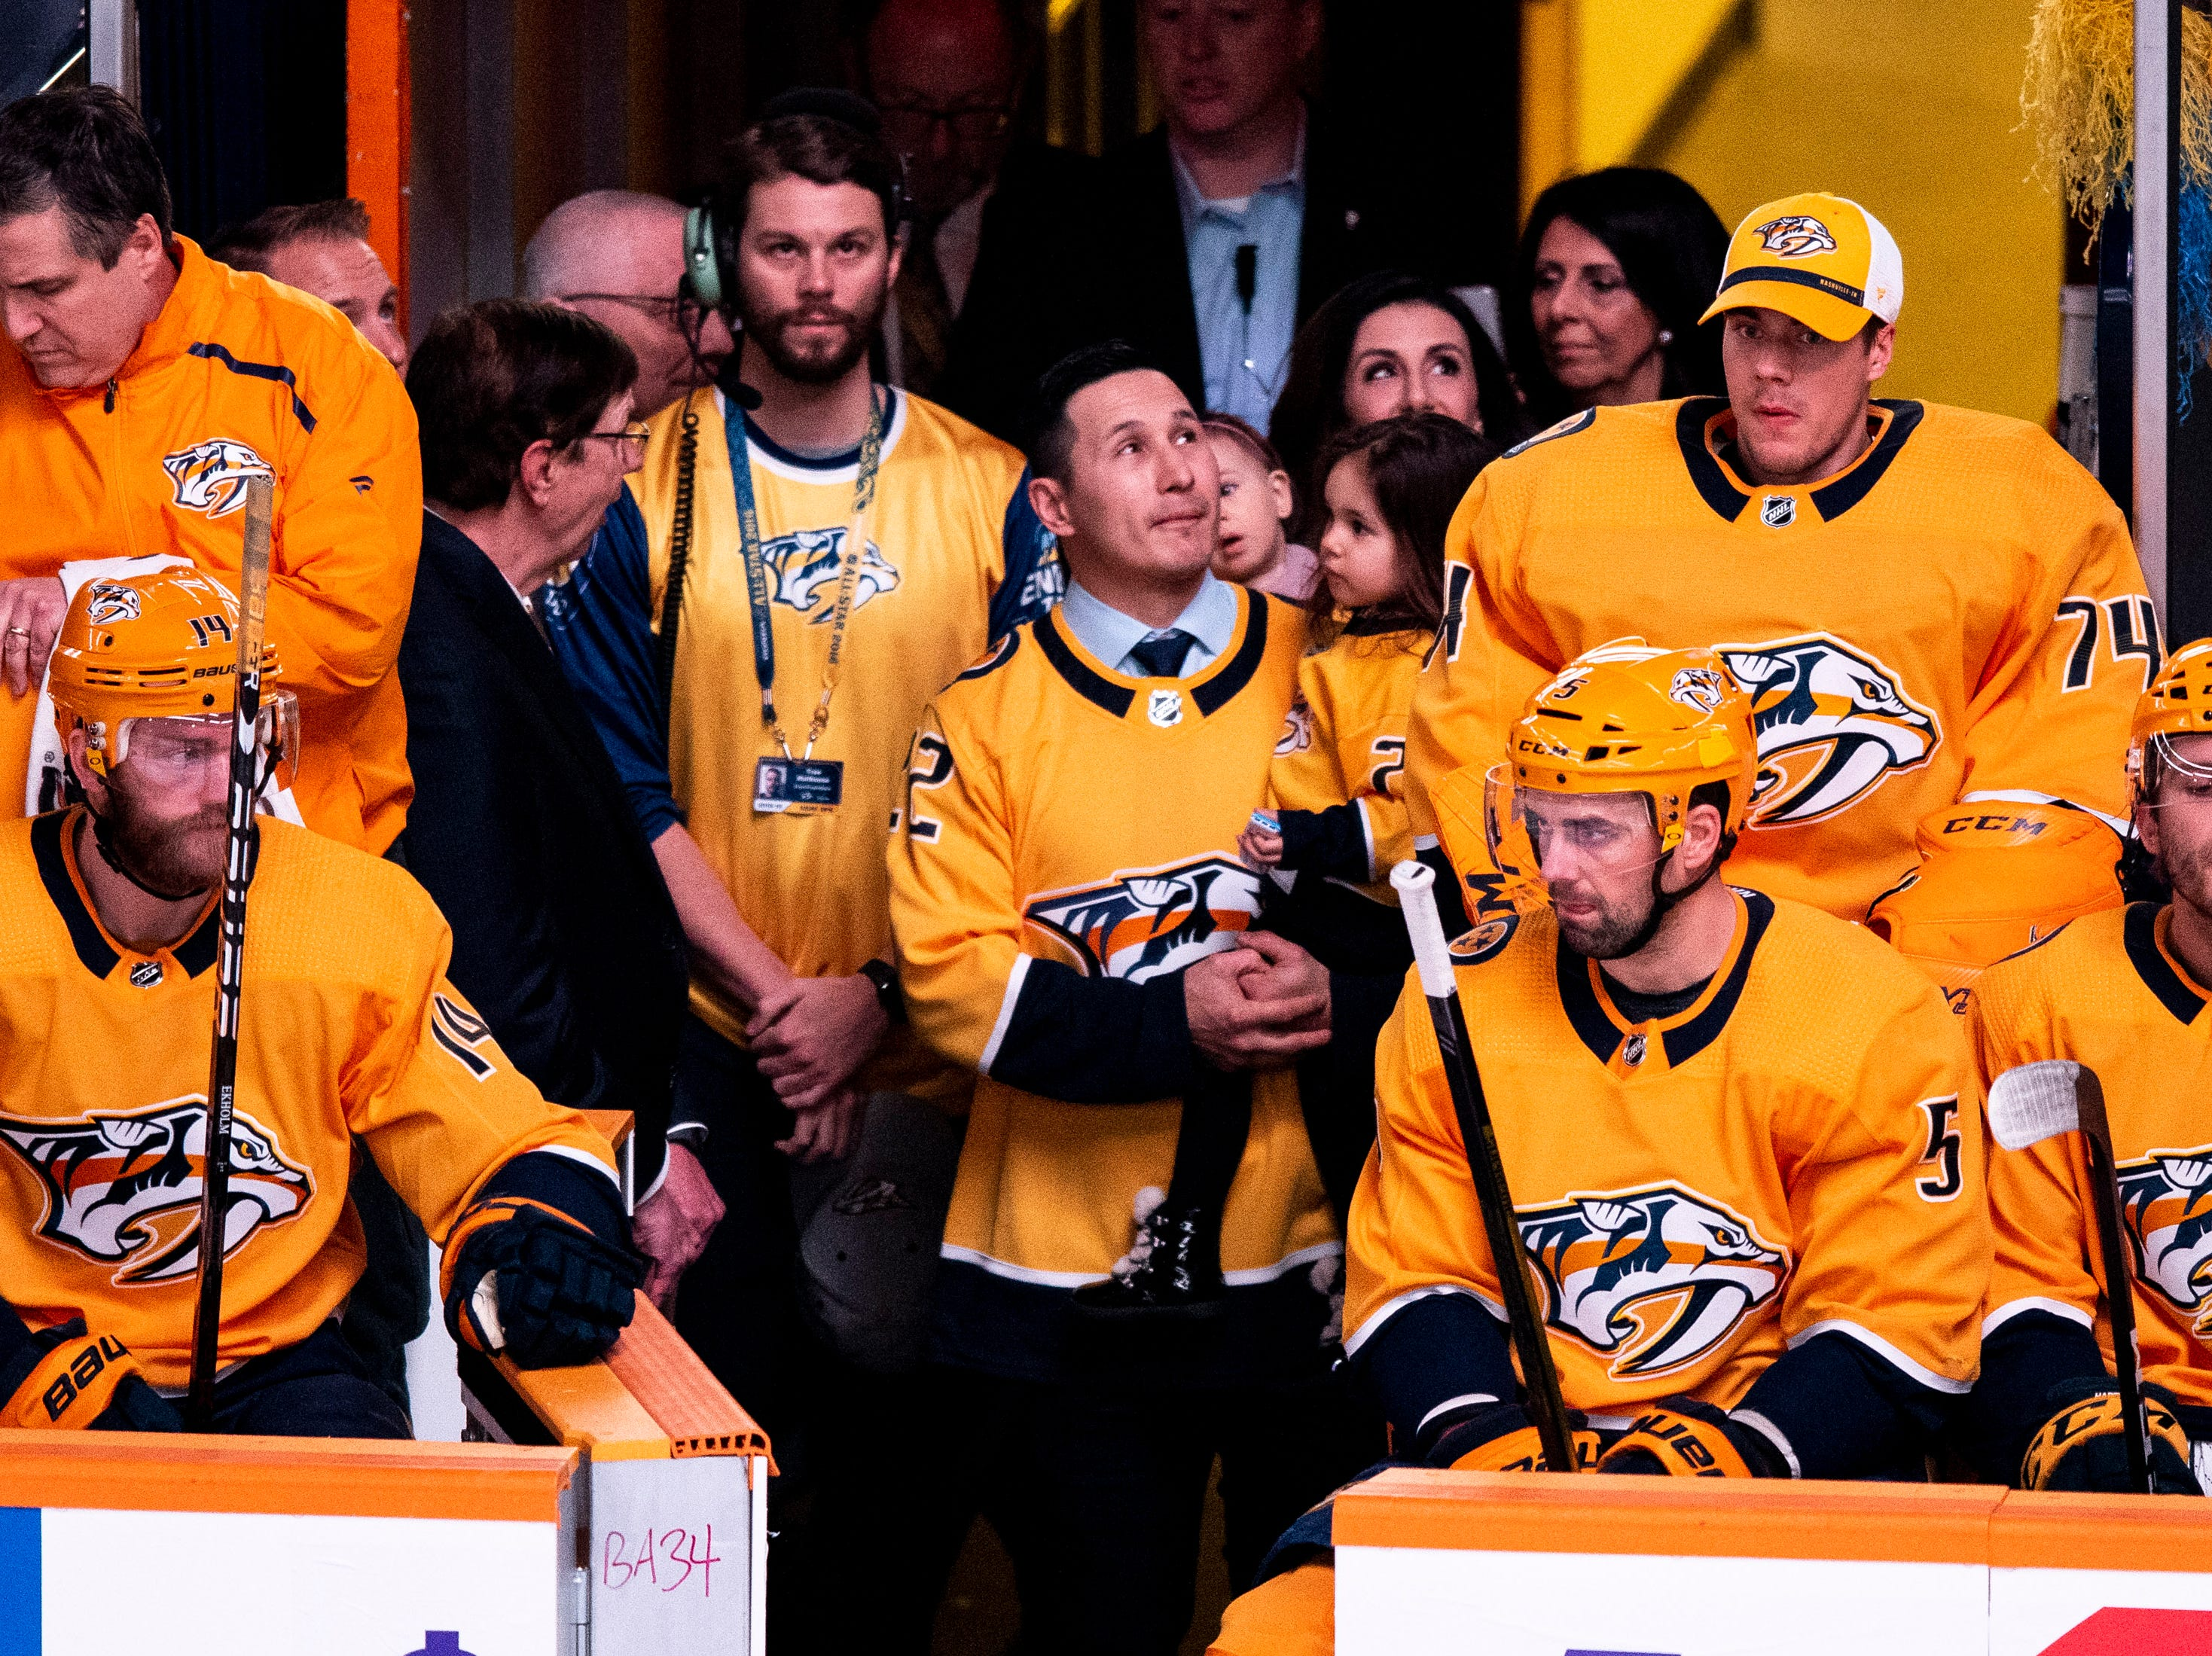 Former Nashville Predators forward Jordin Tootoo waits to be recognized before a game between the Nashville Predators and the Dallas Stars at Bridgestone Arena in Nashville, Tenn., Saturday, Feb. 2, 2019.